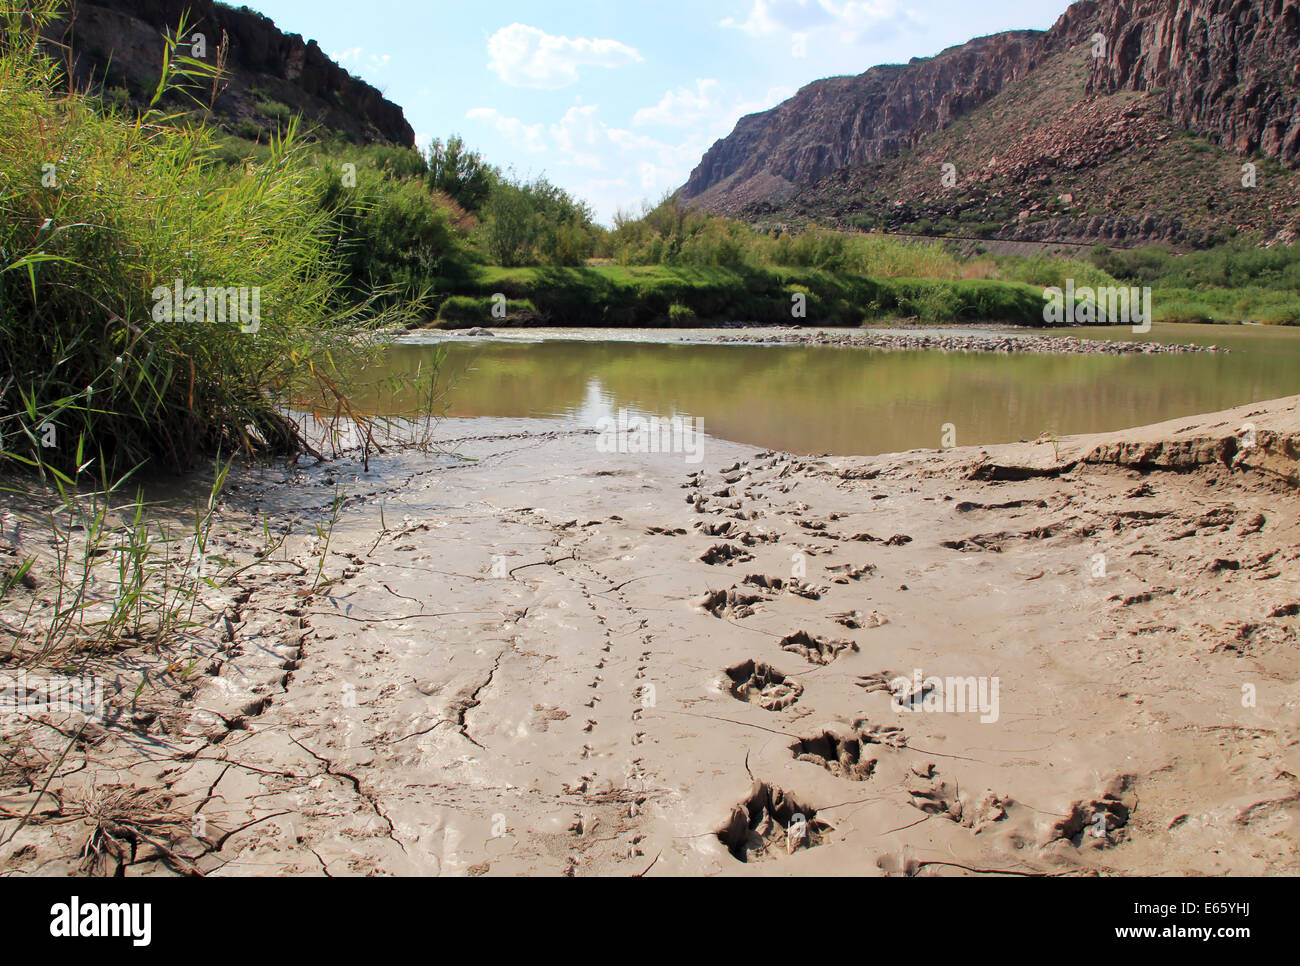 Fresh Black Bear Tracks in Mud, Big Bend Ranch State Park, Texas, United States - Stock Image